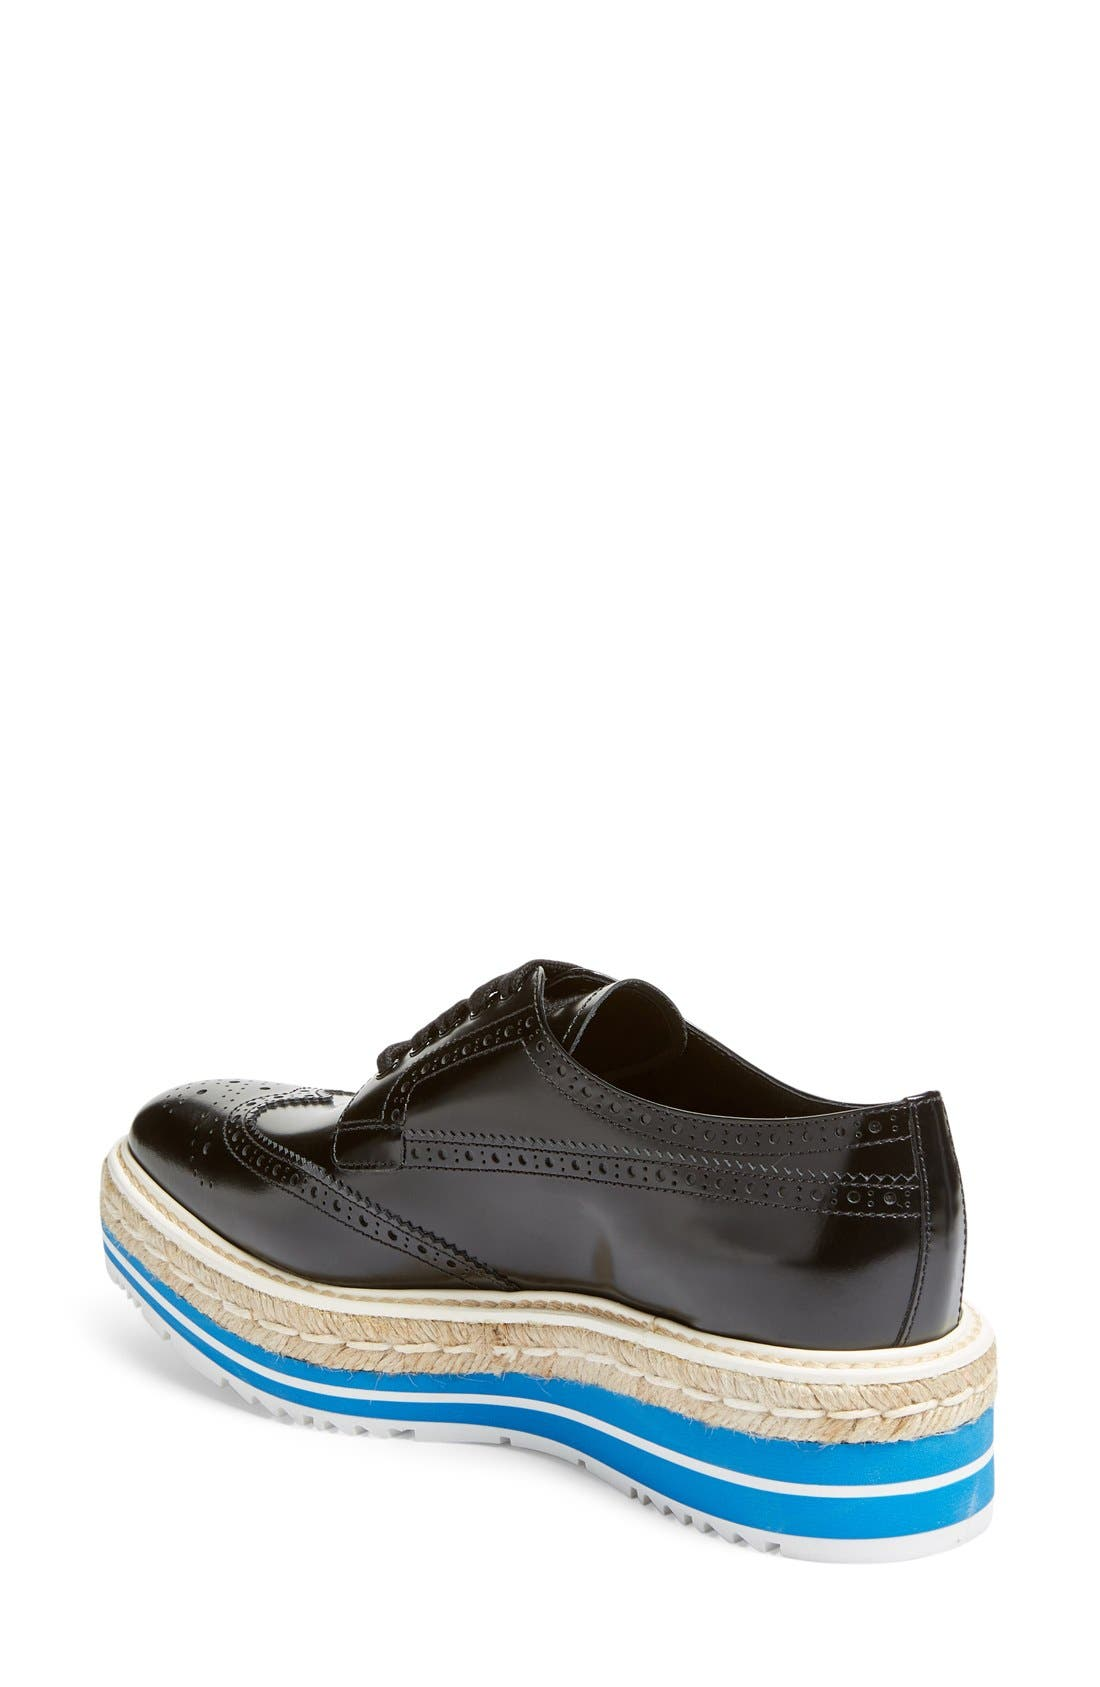 Microsole Espadrille Oxford,                             Alternate thumbnail 5, color,                             001